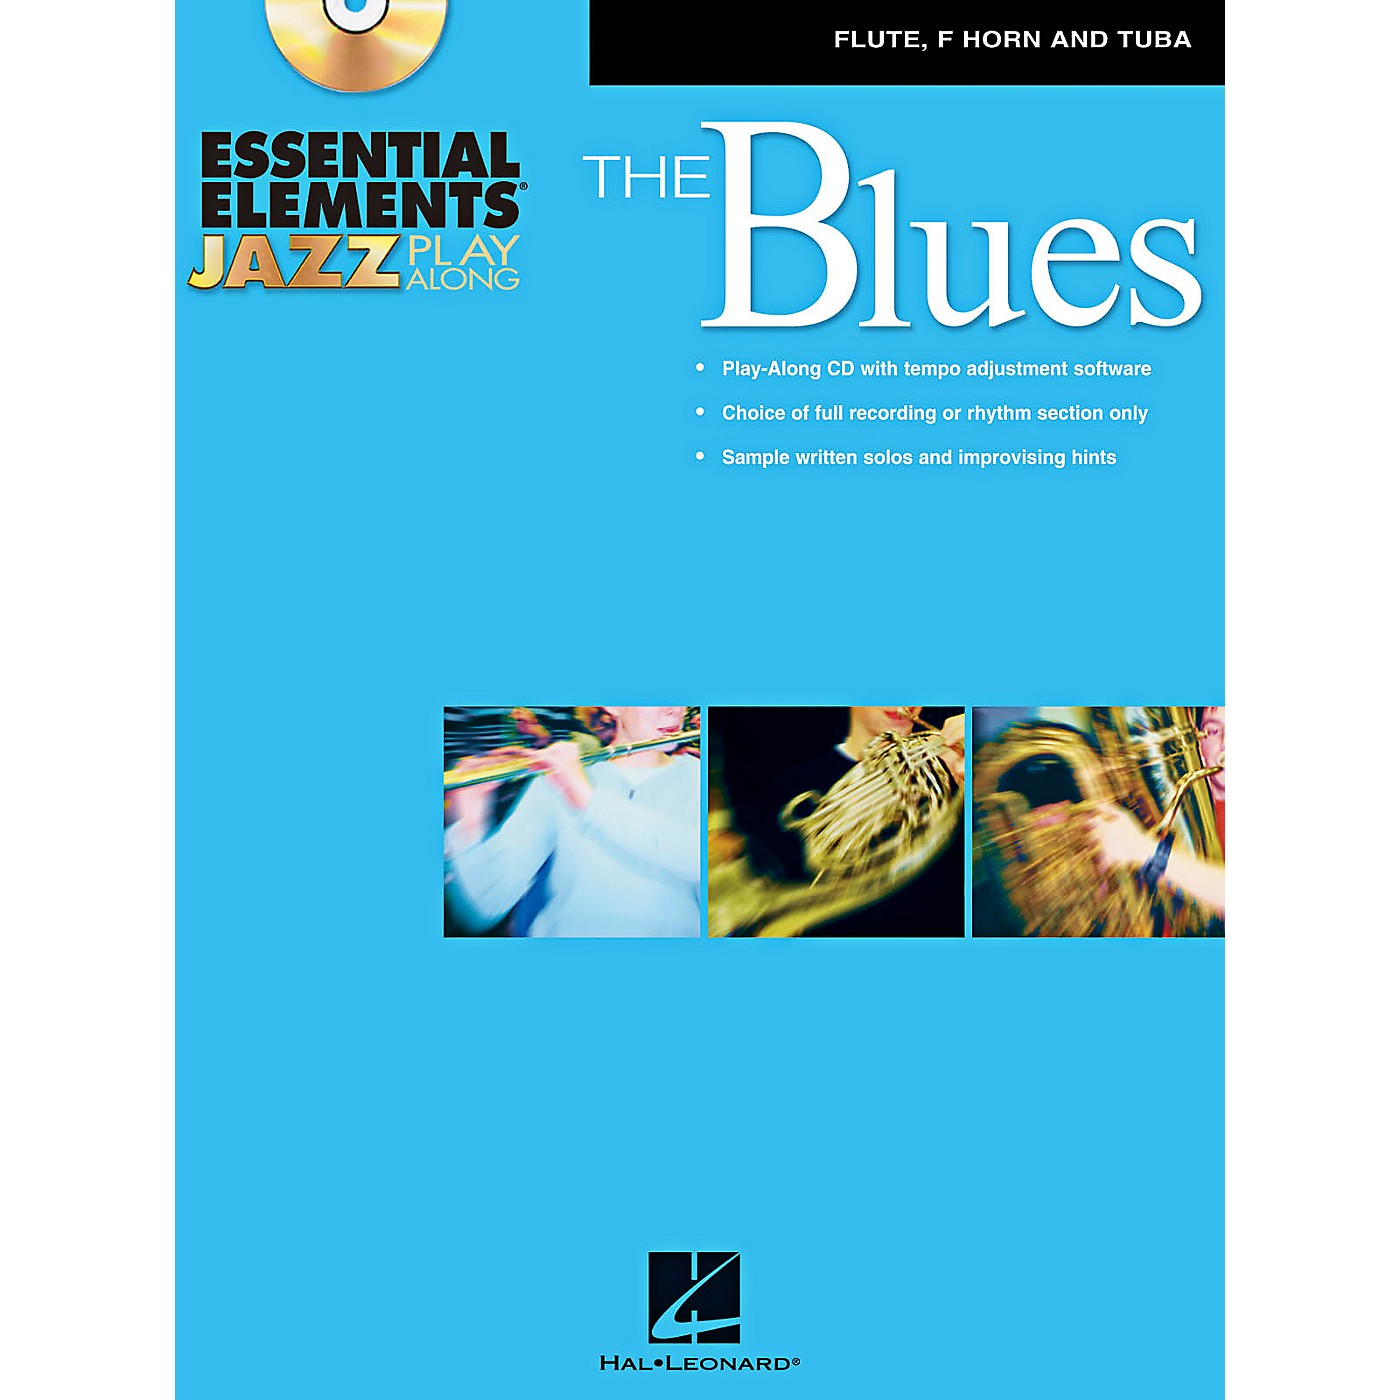 Hal Leonard Essential Elements Jazz Play-Along - The Blues (Flute, French Horn, and Tuba) Book/CD thumbnail